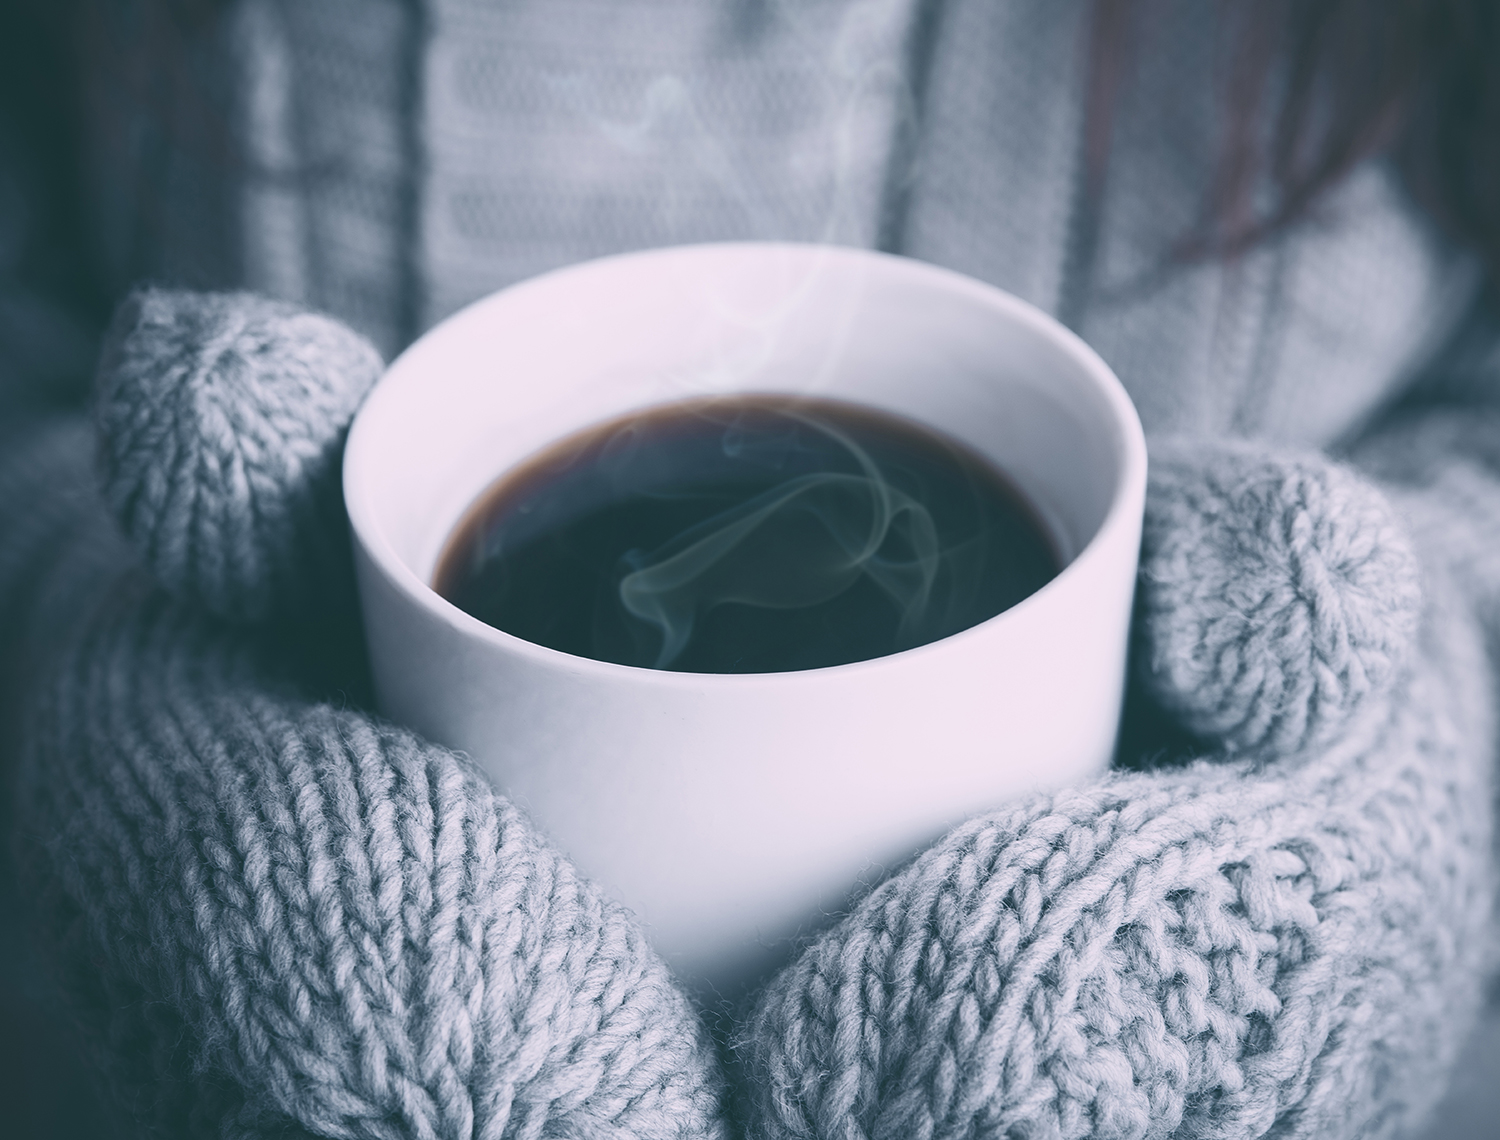 Mitten covered hands holding a coffee cup